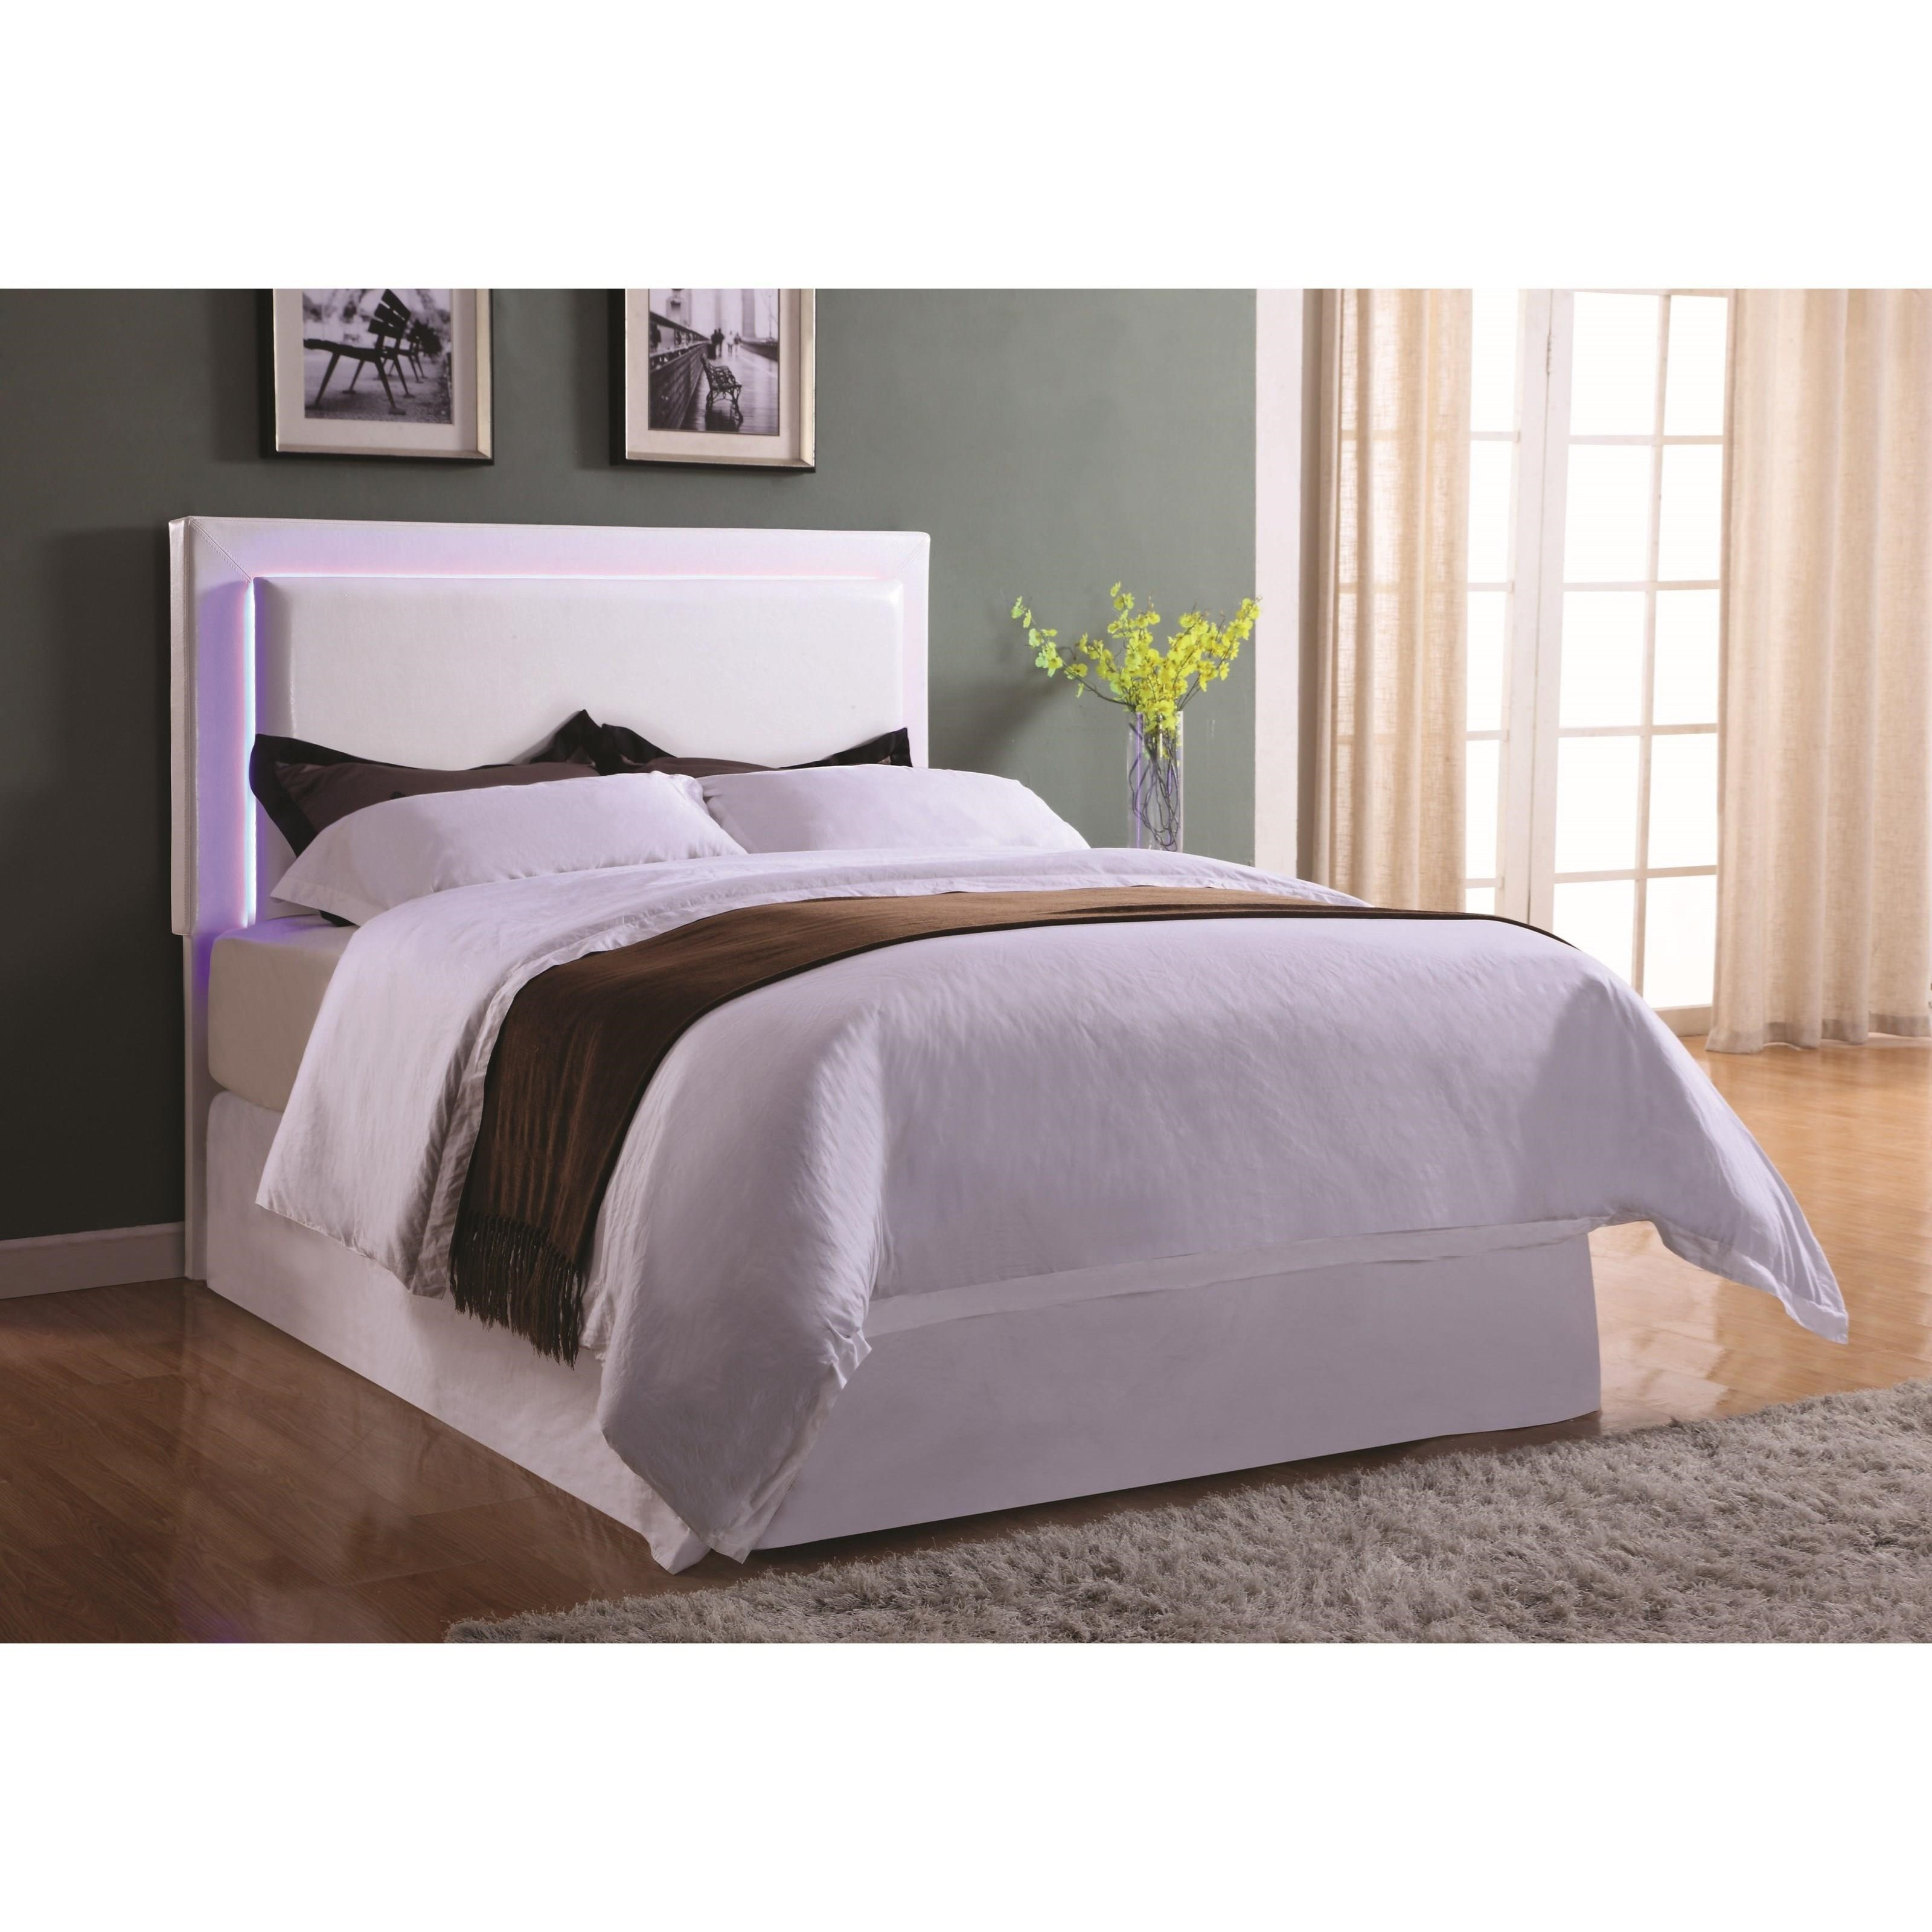 Coaster Upholstered Beds Q/F Led Headboard - Item Number: 300603QF